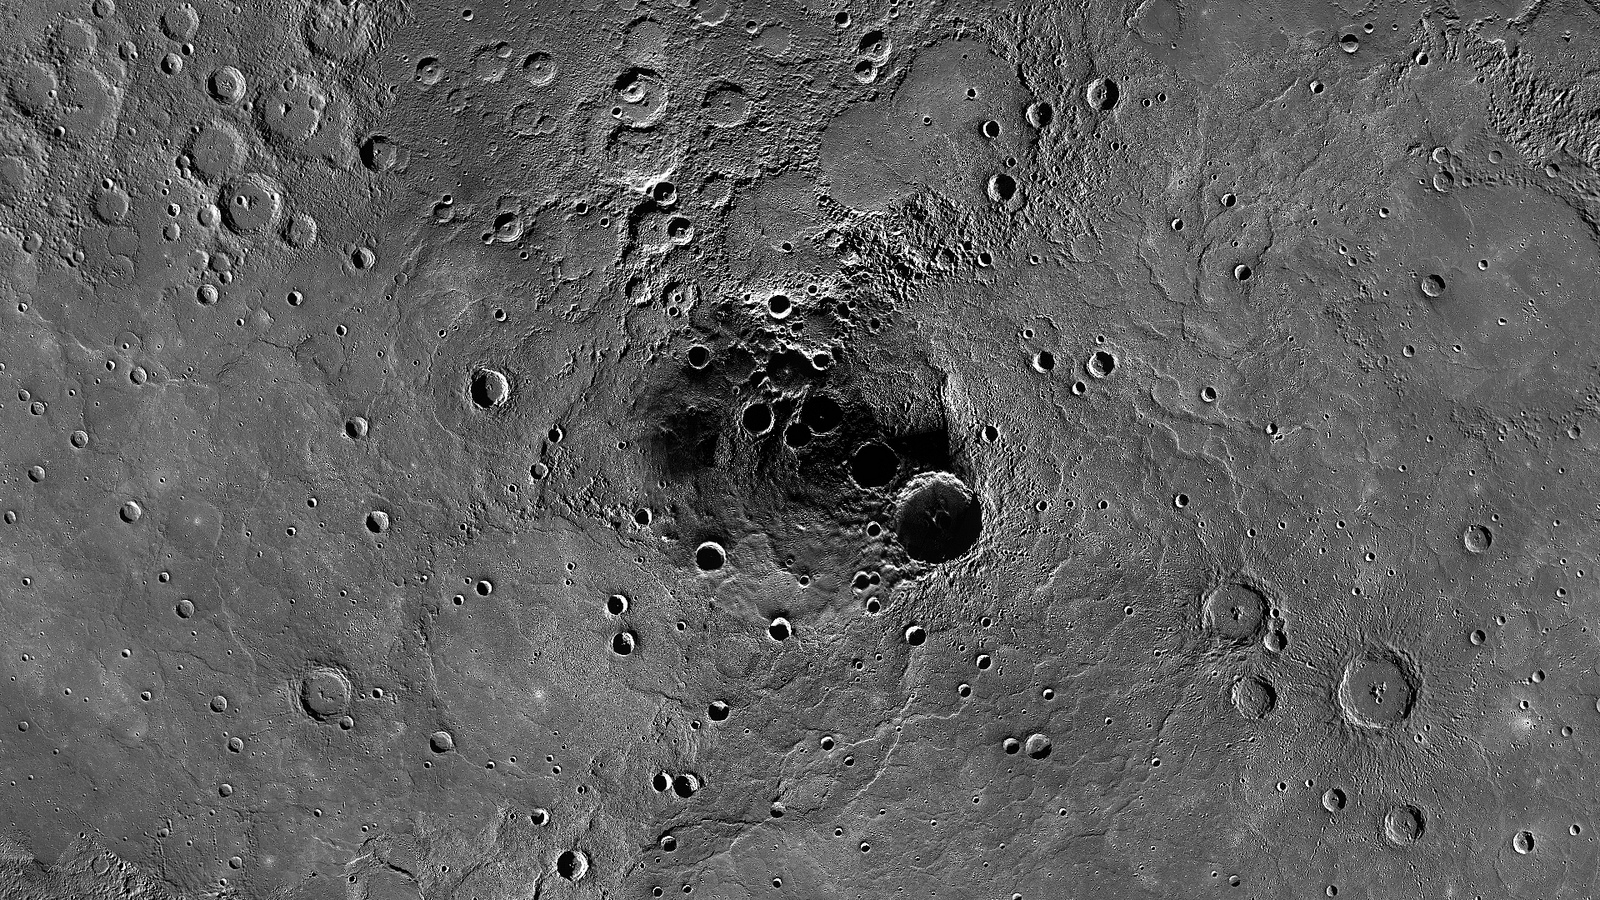 Mercury's North Pole Photo by Messenger